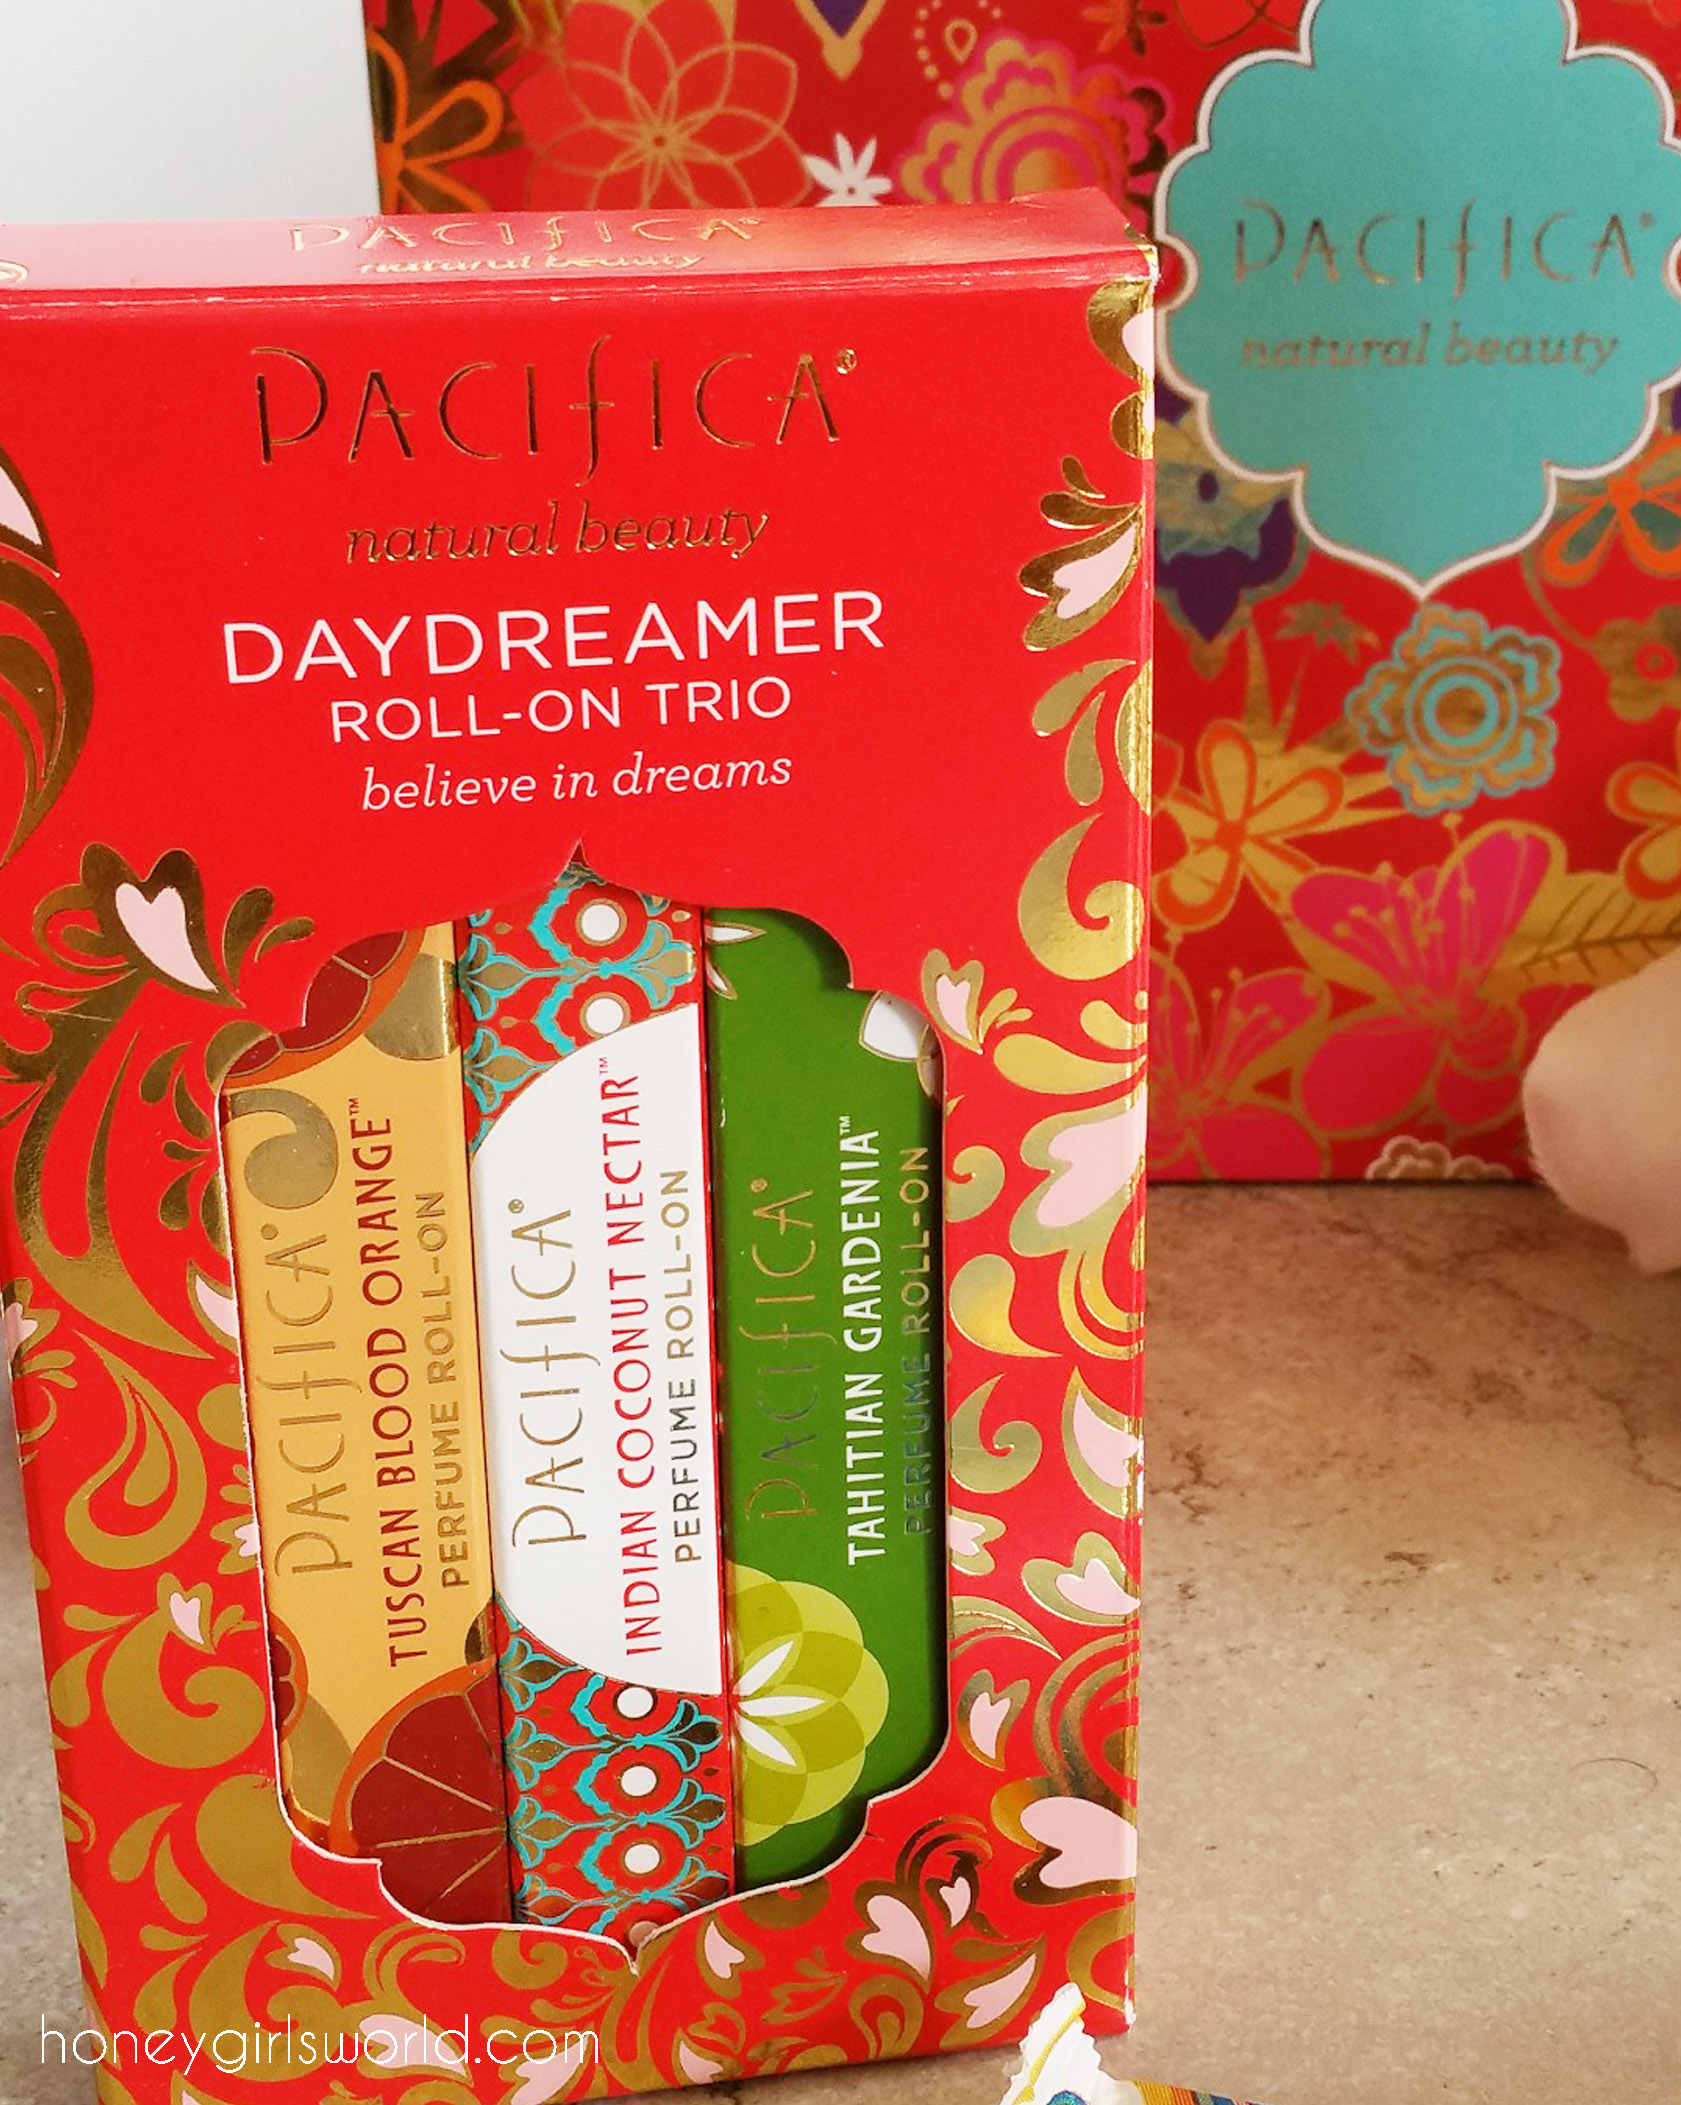 Pacifica, Daydreamer roll-on trio, target, perfume, fragrance, coco pure travel size, super hydrating hand cream, indian coconut nectar hand cream, tuscan blood orange hand cream, made to matter, pacifica beauty,